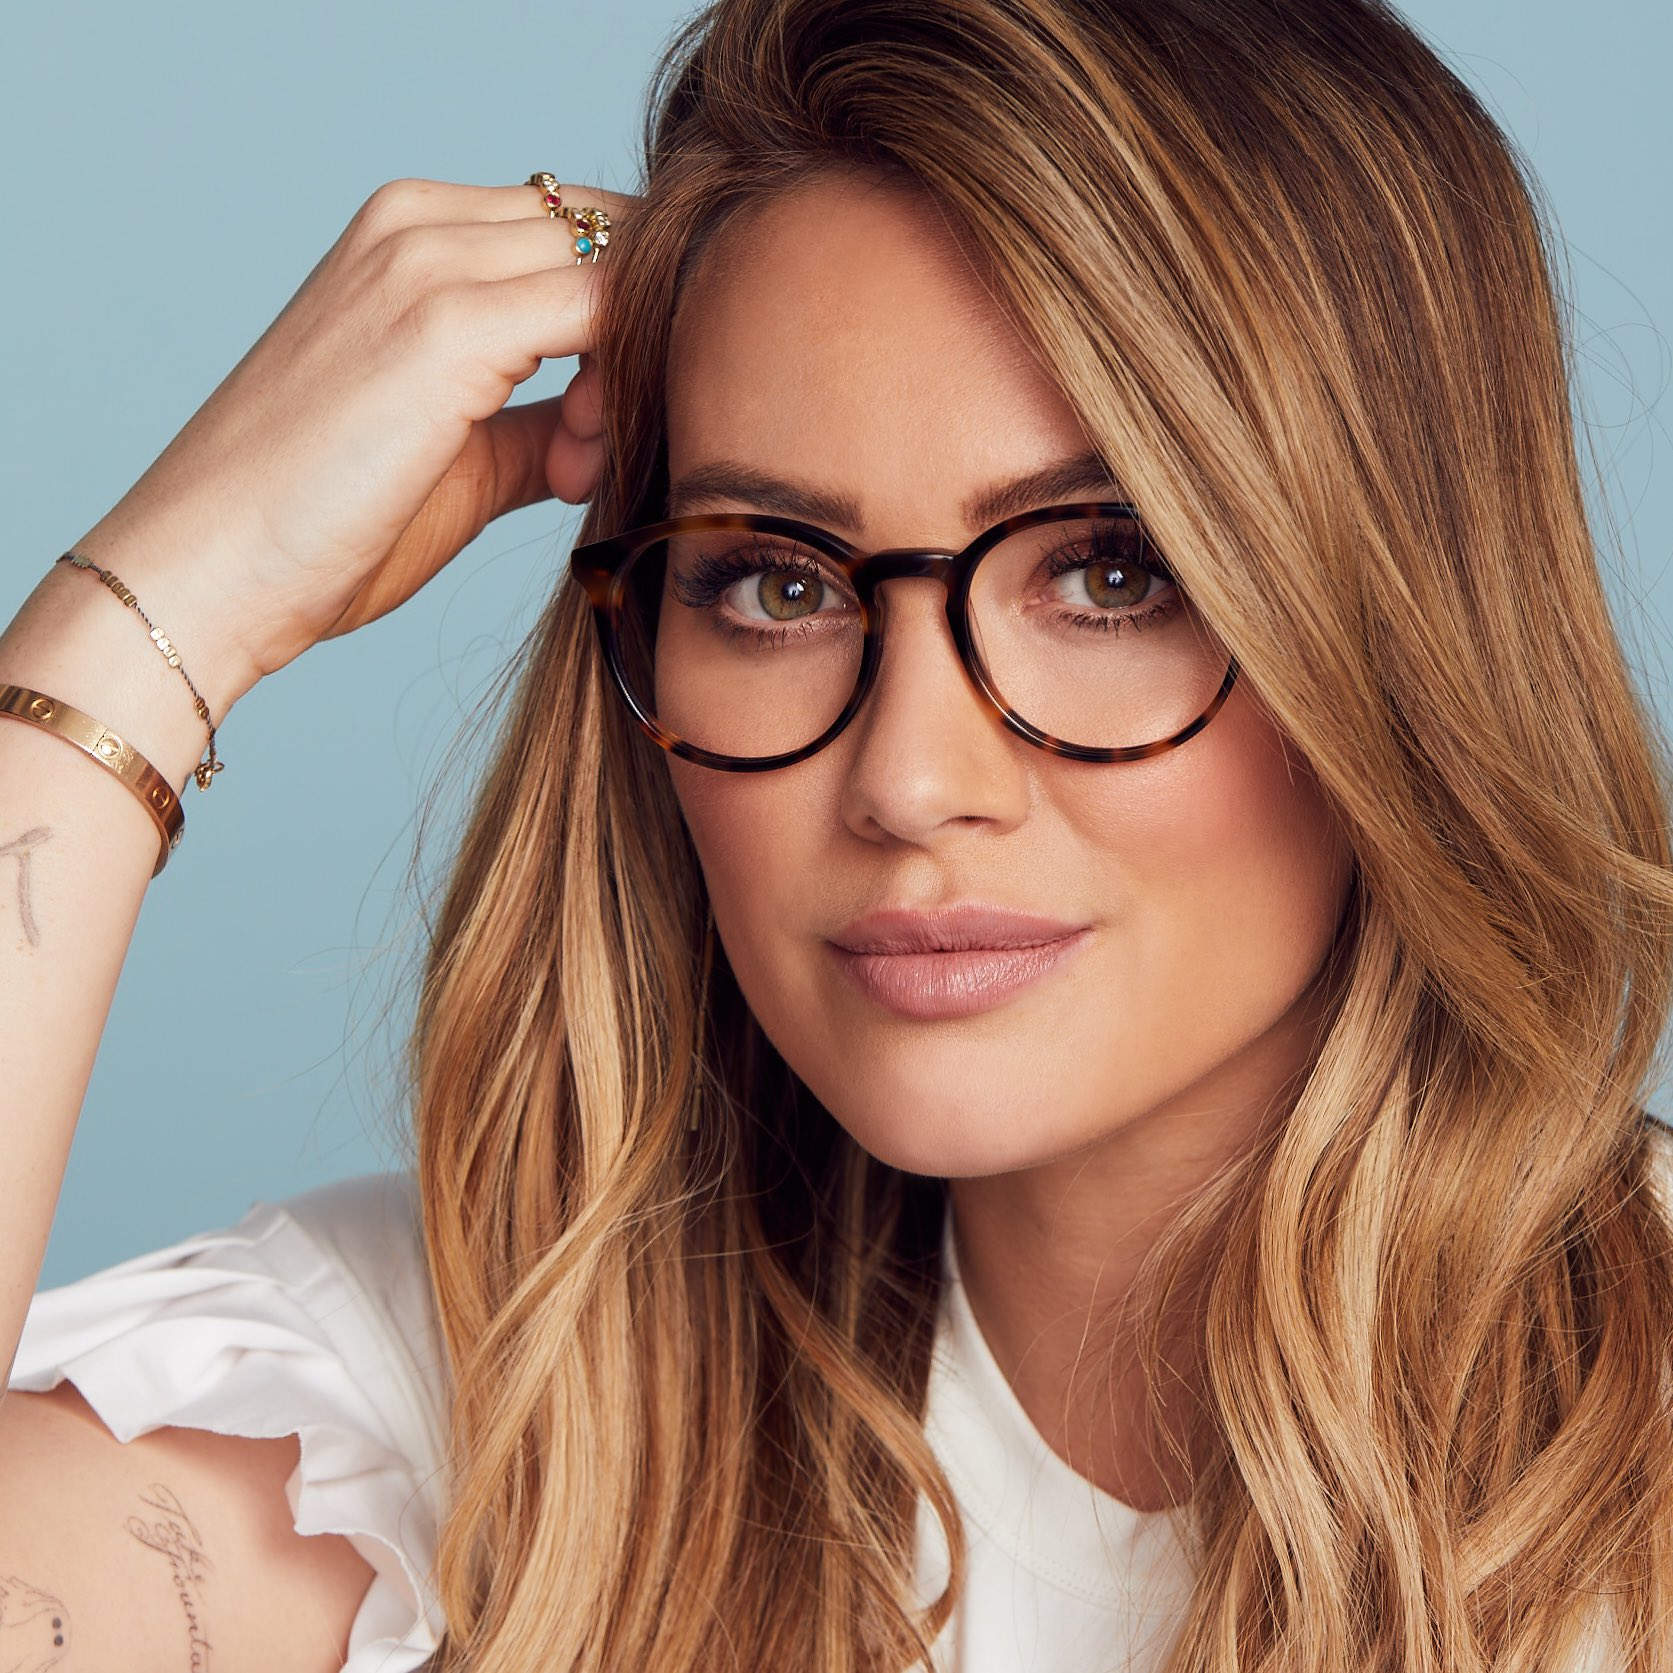 Hilary Duff On Twitter Quot My New Eyewear Collection W